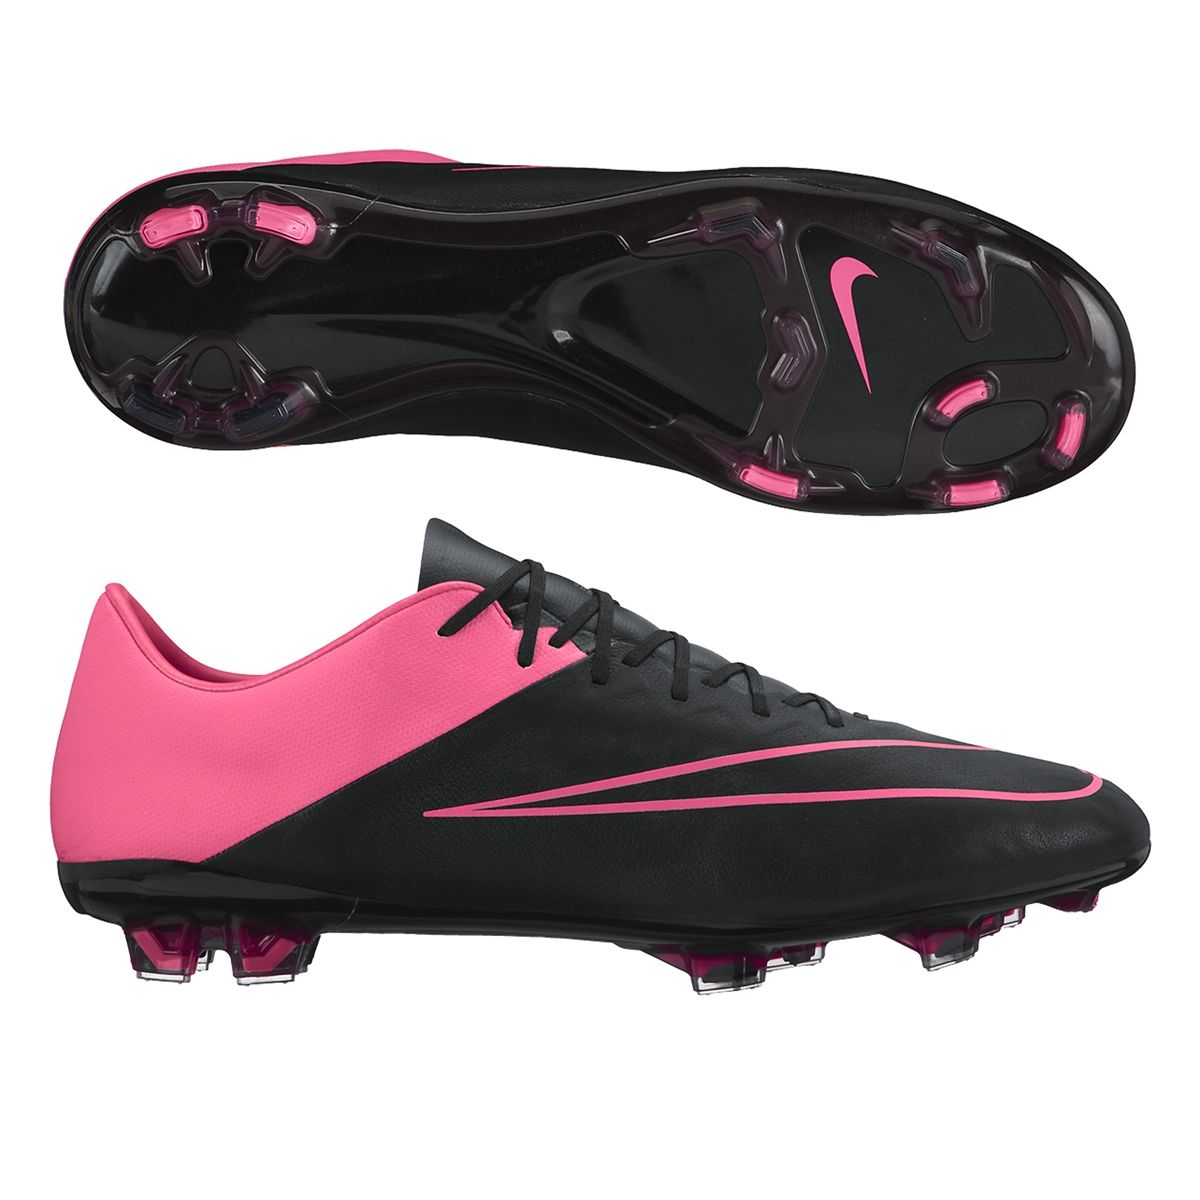 The Nike Mercurial Vapor X soccer cleats get a leather touch with the Nike  Tech Craft. Order the Tech Craft Vapor X at soccercorner.com ... 9da2909c2